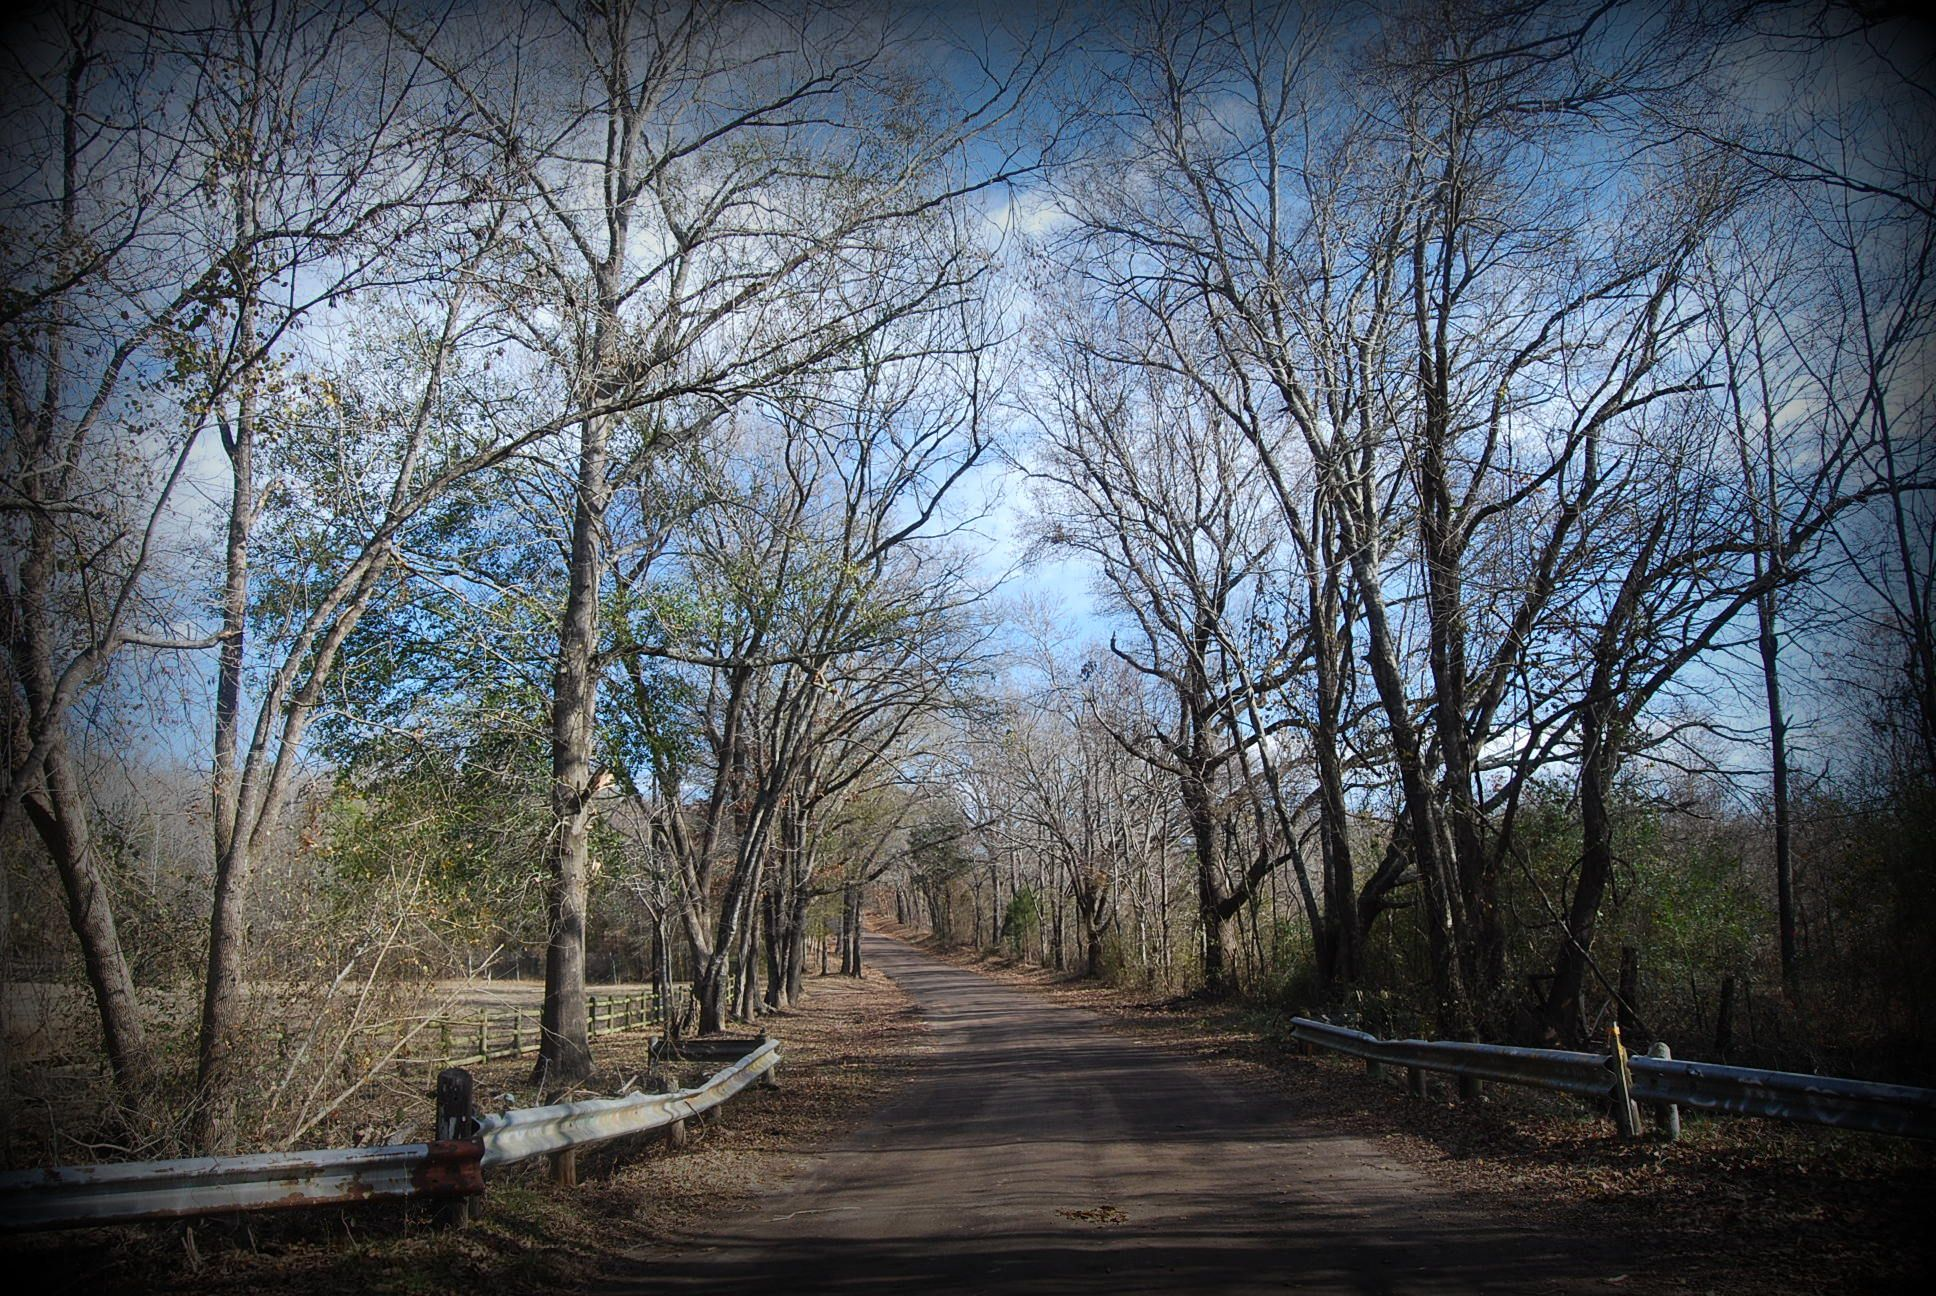 The road outside the Mineola Nature Preserve, taken by Stephanie Frazier.